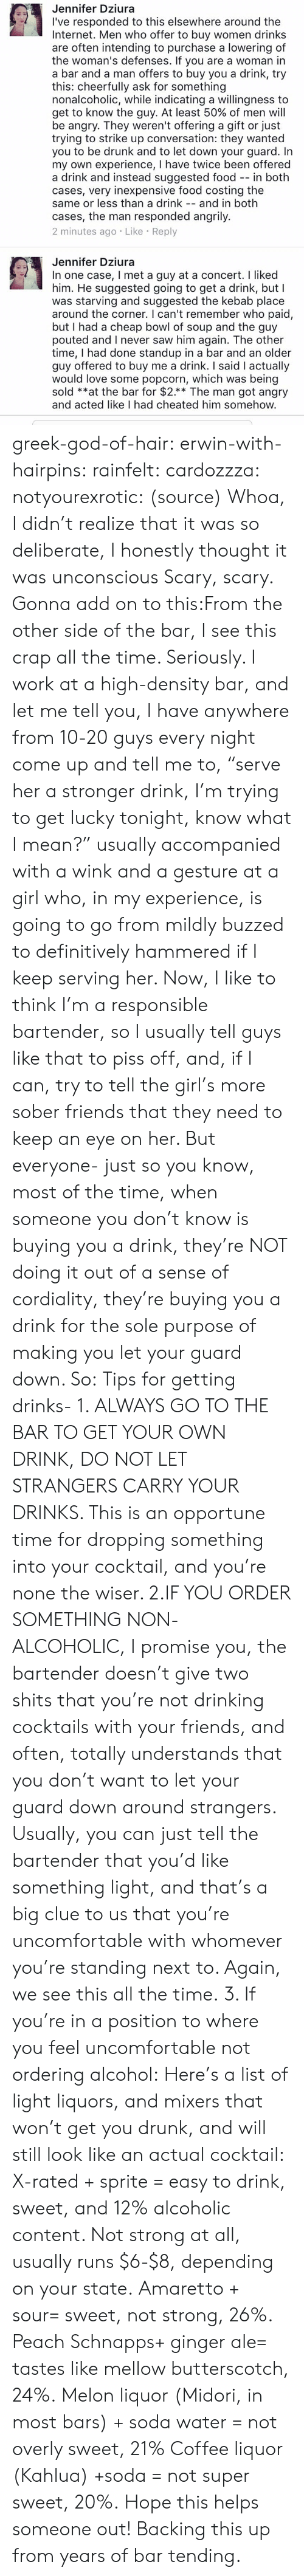 "Bars: Jennifer Dziura  I've responded to this elsewhere around the  Internet. Men who offer to buy women drinks  are often intending to purchase a lowering of  the woman's defenses. If you are a woman in  a bar and a man offers to buy you a  this: cheerfully ask for something  nonalcoholic, while indicating  get to know the guy. At least 50% of men will  be angry. They weren't offering a gift or just  trying to strike up conversation: they wanted  you to be drunk and to let down your guard. In  my own experience, I have twice been offered  a drink and instead suggested food -- in both  cases, very inexpensive food costing the  same or less than a drink  drink, try  willingness to  a  and in both  --  cases, the man responded angrily.  2 minutes ago Like Reply  Jennifer Dziura  In one case, I met a guy at a concert.I liked  him. He suggested going to get a drink, but I  was starving and suggested the kebab place  around the corner. I can't remember who paid,  but I had a cheap bowl of soup and the guy  pouted and I never saw him again. The other  time, I had done standup in a bar and an older  guy offered to buy me a drink. I said I actually  would love some popcorn, which was  sold **at the bar for $2.** The man got angry  and acted like I had cheated him somehow.  being greek-god-of-hair:   erwin-with-hairpins:  rainfelt:  cardozzza:  notyourexrotic:  (source)  Whoa, I didn't realize that it was so deliberate, I honestly thought it was unconscious  Scary, scary.   Gonna add on to this:From the other side of the bar, I see this crap all the time. Seriously. I work at a high-density bar, and let me tell you, I have anywhere from 10-20 guys every night come up and tell me to, ""serve her a stronger drink, I'm trying to get lucky tonight, know what I mean?"" usually accompanied with a wink and a gesture at a girl who, in my experience, is going to go from mildly buzzed to definitively hammered if I keep serving her. Now, I like to think I'm a responsible bartender, so I usually tell guys like that to piss off, and, if I can, try to tell the girl's more sober friends that they need to keep an eye on her. But everyone- just so you know, most of the time, when someone you don't know is buying you a drink, they're NOT doing it out of a sense of cordiality, they're buying you a drink for the sole purpose of making you let your guard down. So: Tips for getting drinks- 1. ALWAYS GO TO THE BAR TO GET YOUR OWN DRINK, DO NOT LET STRANGERS CARRY YOUR DRINKS. This is an opportune time for dropping something into your cocktail, and you're none the wiser.  2.IF YOU ORDER SOMETHING NON-ALCOHOLIC, I promise you, the bartender doesn't give two shits that you're not drinking cocktails with your friends, and often, totally understands that you don't want to let your guard down around strangers. Usually, you can just tell the bartender that you'd like something light, and that's a big clue to us that you're uncomfortable with whomever you're standing next to. Again, we see this all the time. 3. If you're in a position to where you feel uncomfortable not ordering alcohol: Here's a list of light liquors, and mixers that won't get you drunk, and will still look like an actual cocktail: X-rated + sprite = easy to drink, sweet, and 12% alcoholic content. Not strong at all, usually runs $6-$8, depending on your state. Amaretto + sour= sweet, not strong, 26%. Peach Schnapps+ ginger ale= tastes like mellow butterscotch, 24%. Melon liquor (Midori, in most bars) + soda water = not overly sweet, 21% Coffee liquor (Kahlua) +soda = not super sweet, 20%. Hope this helps someone out!   Backing this up from years of bar tending."